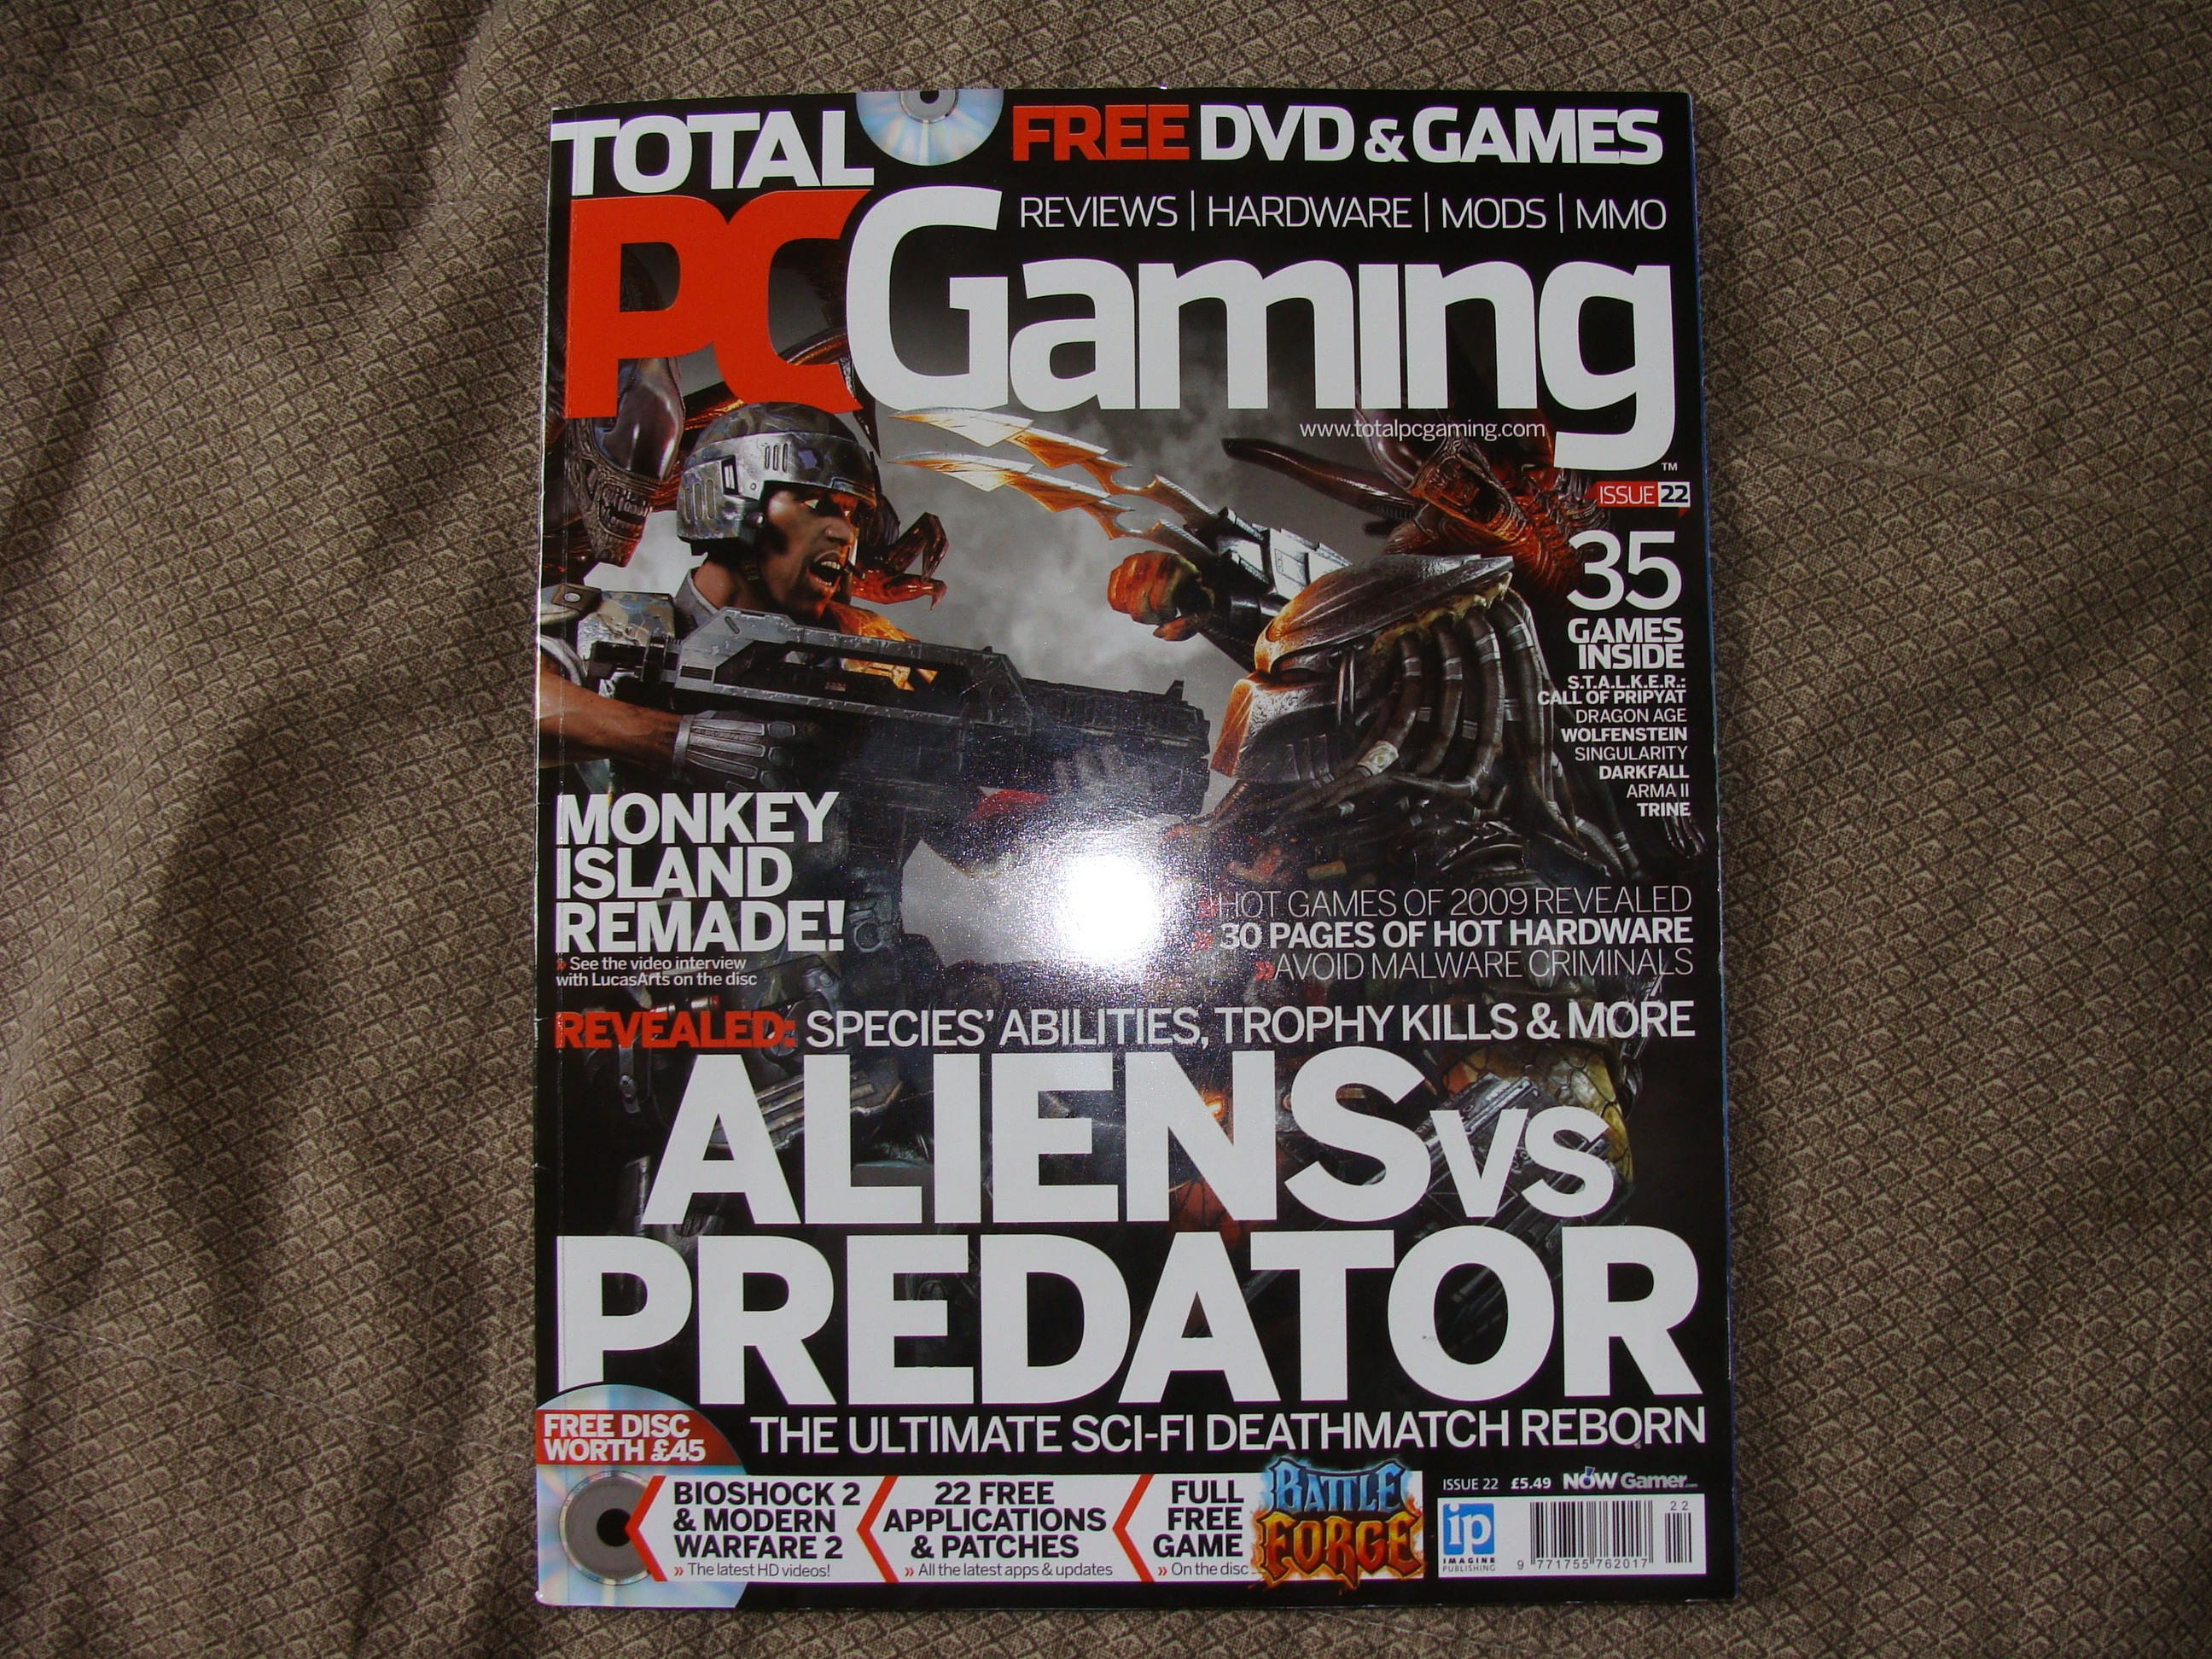 C&C Retarded: Red Cocaine in PC Gaming Magazine news - Mod DB